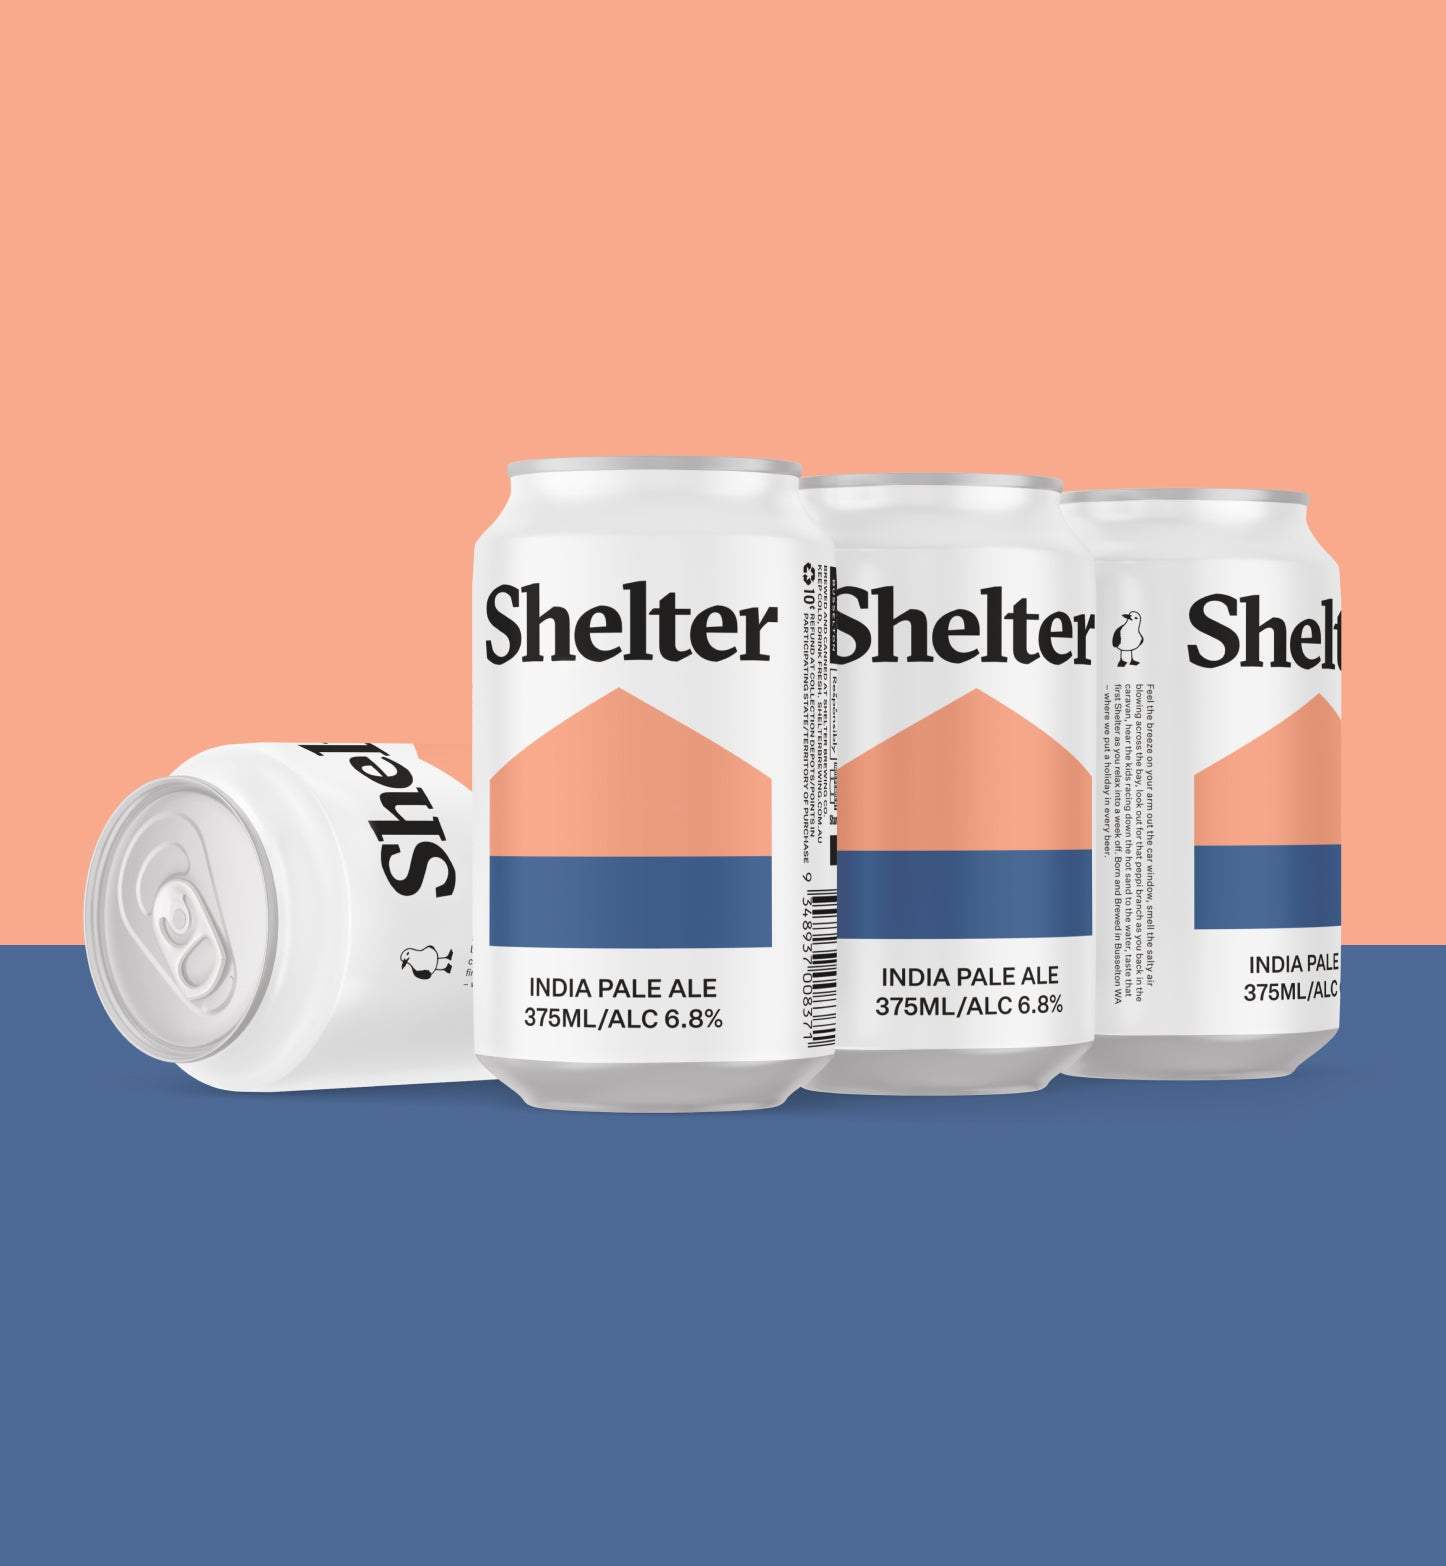 Shelter India Pale Ale